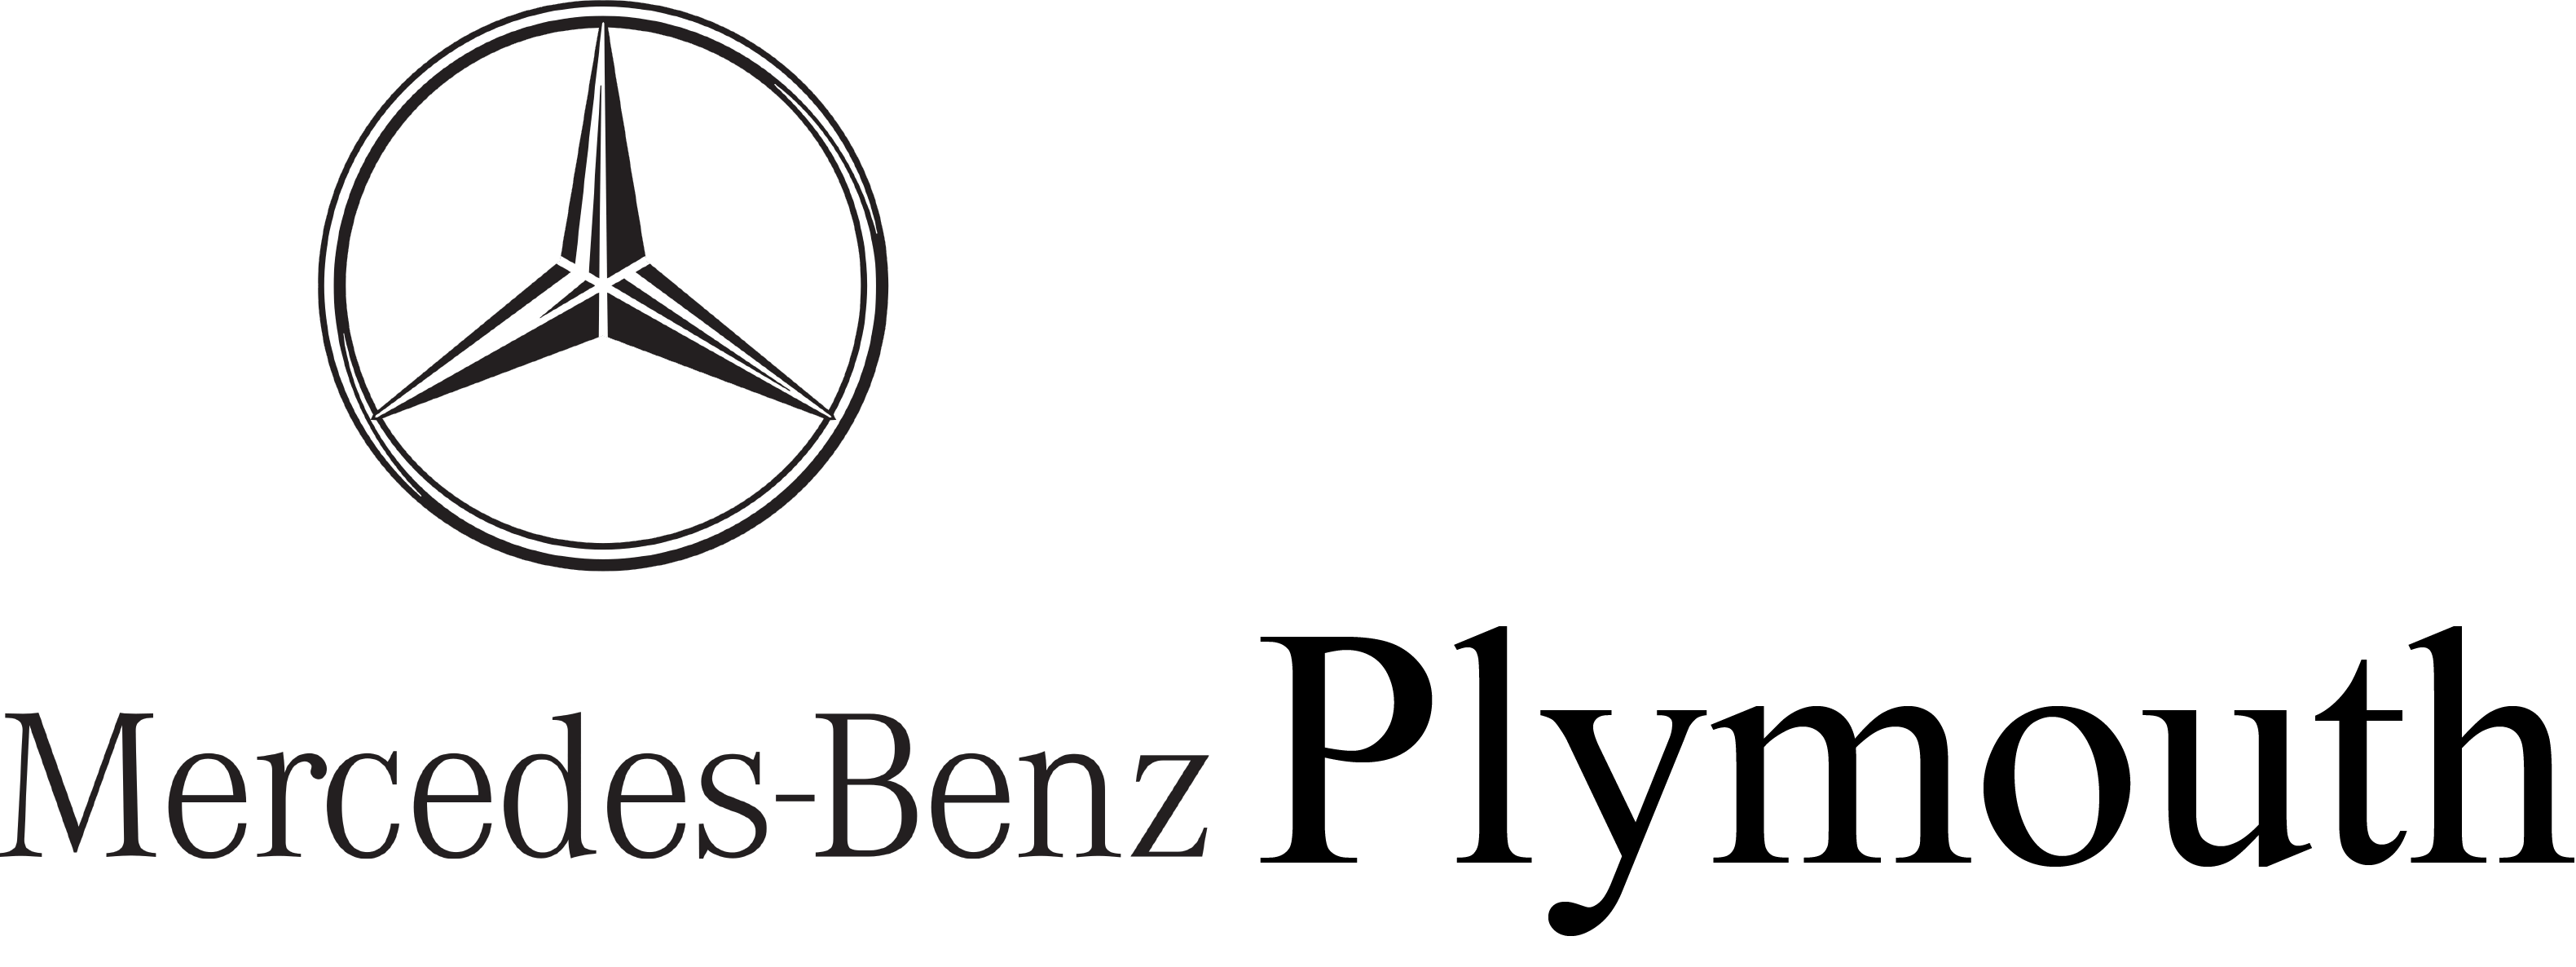 http://plymouthpropertymaintenance.co.uk/wp-content/uploads/2019/10/Mercedes-Benz_logo_transparent.png